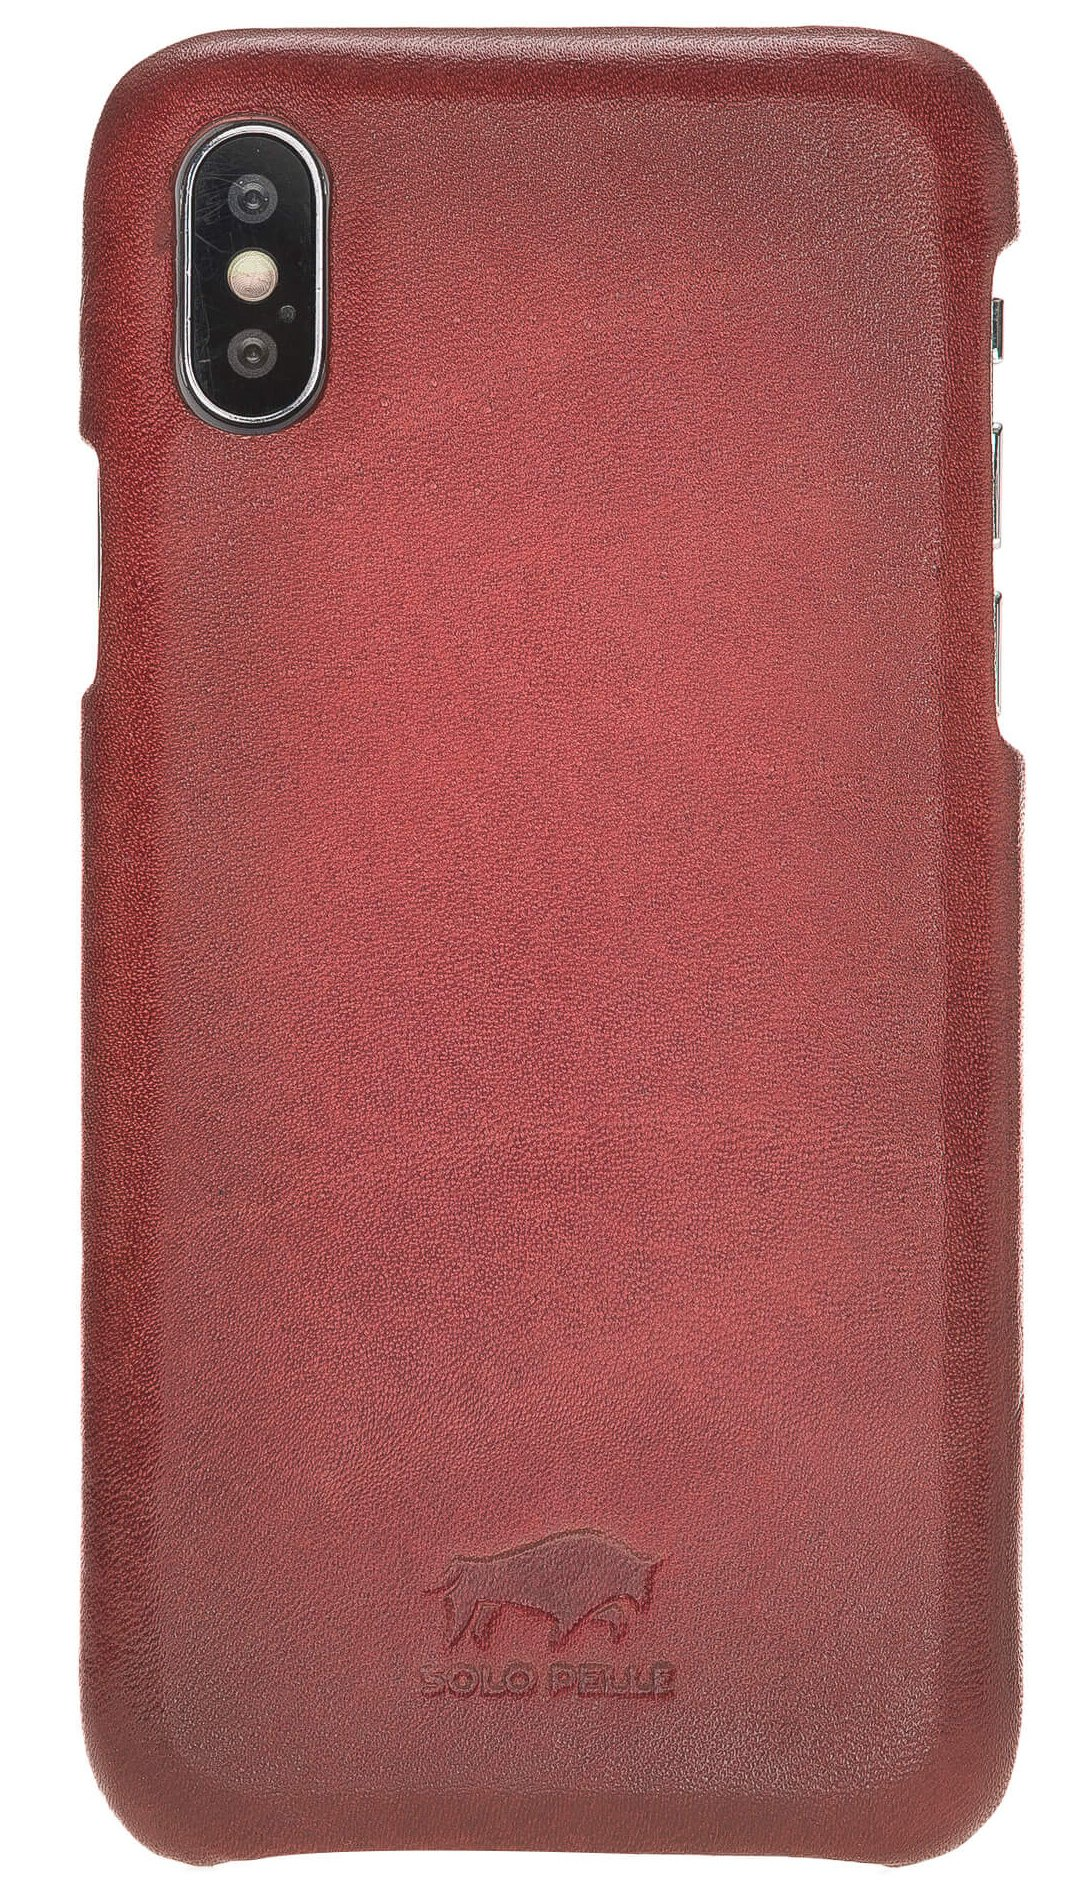 "Lederhülle für das iPhone XS/X Ledertasche Backcover - ""Princeton"" - in Rot Burned"